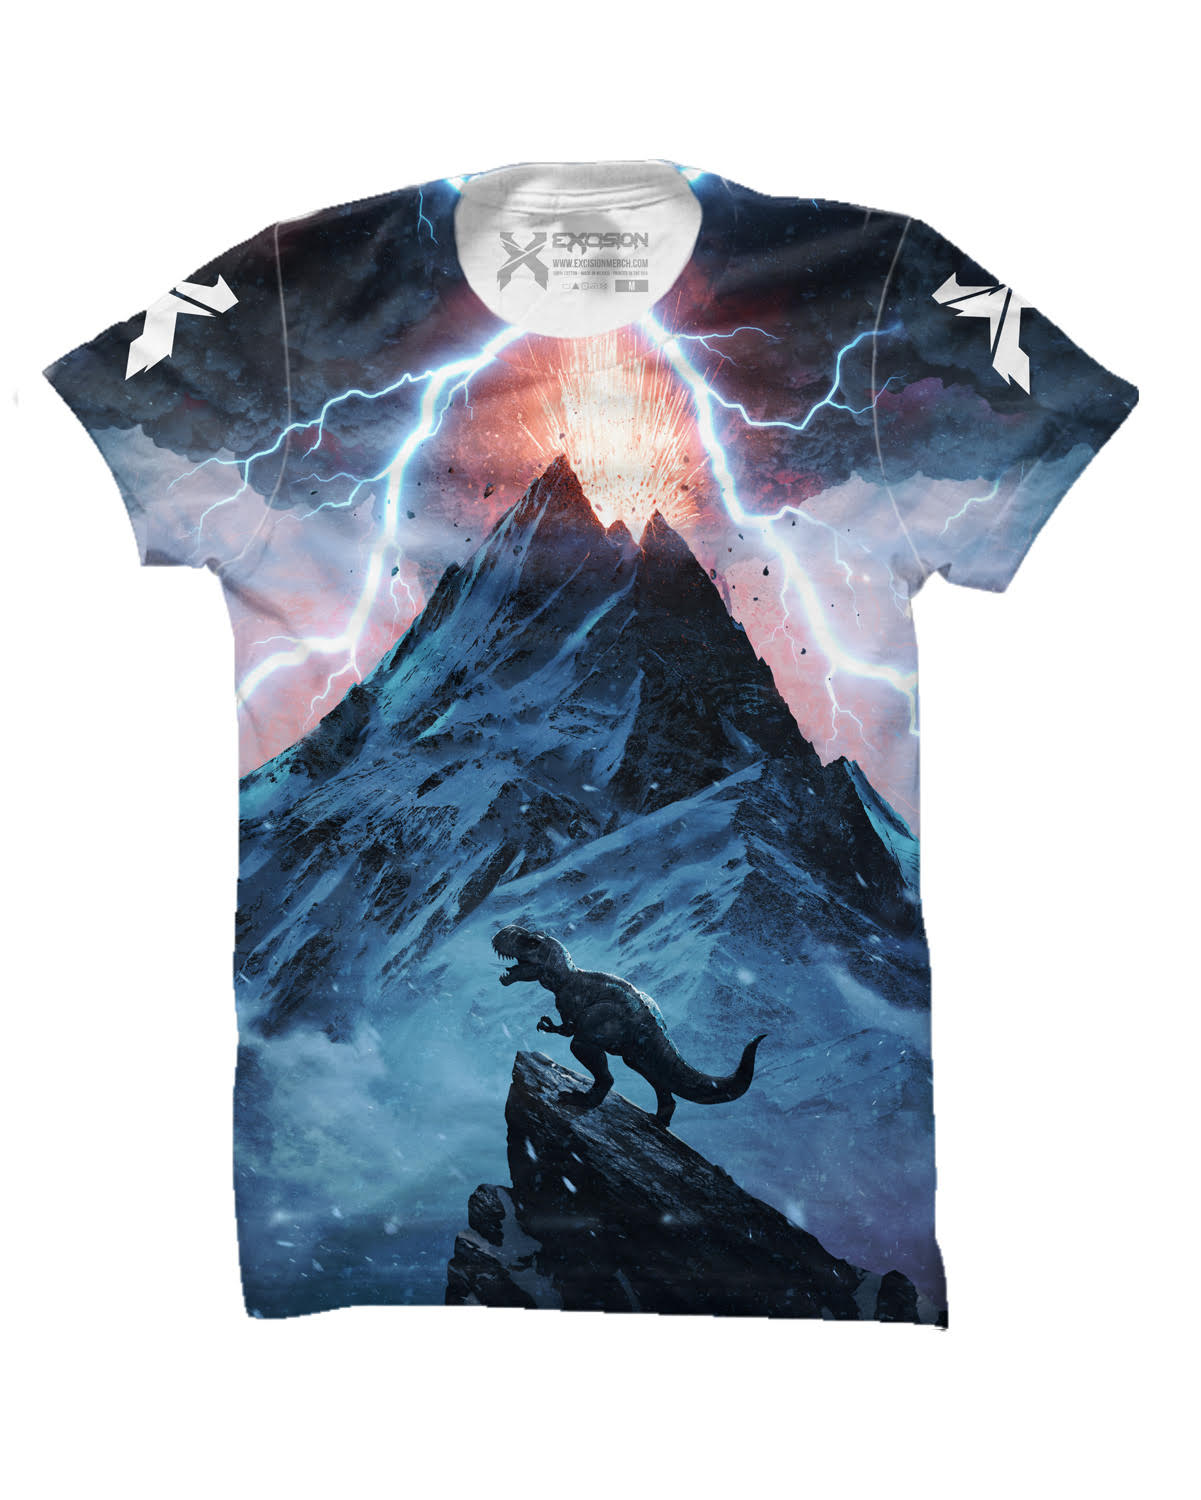 Excision 'Apex' Dye Sub T-Shirt - Blue/Black